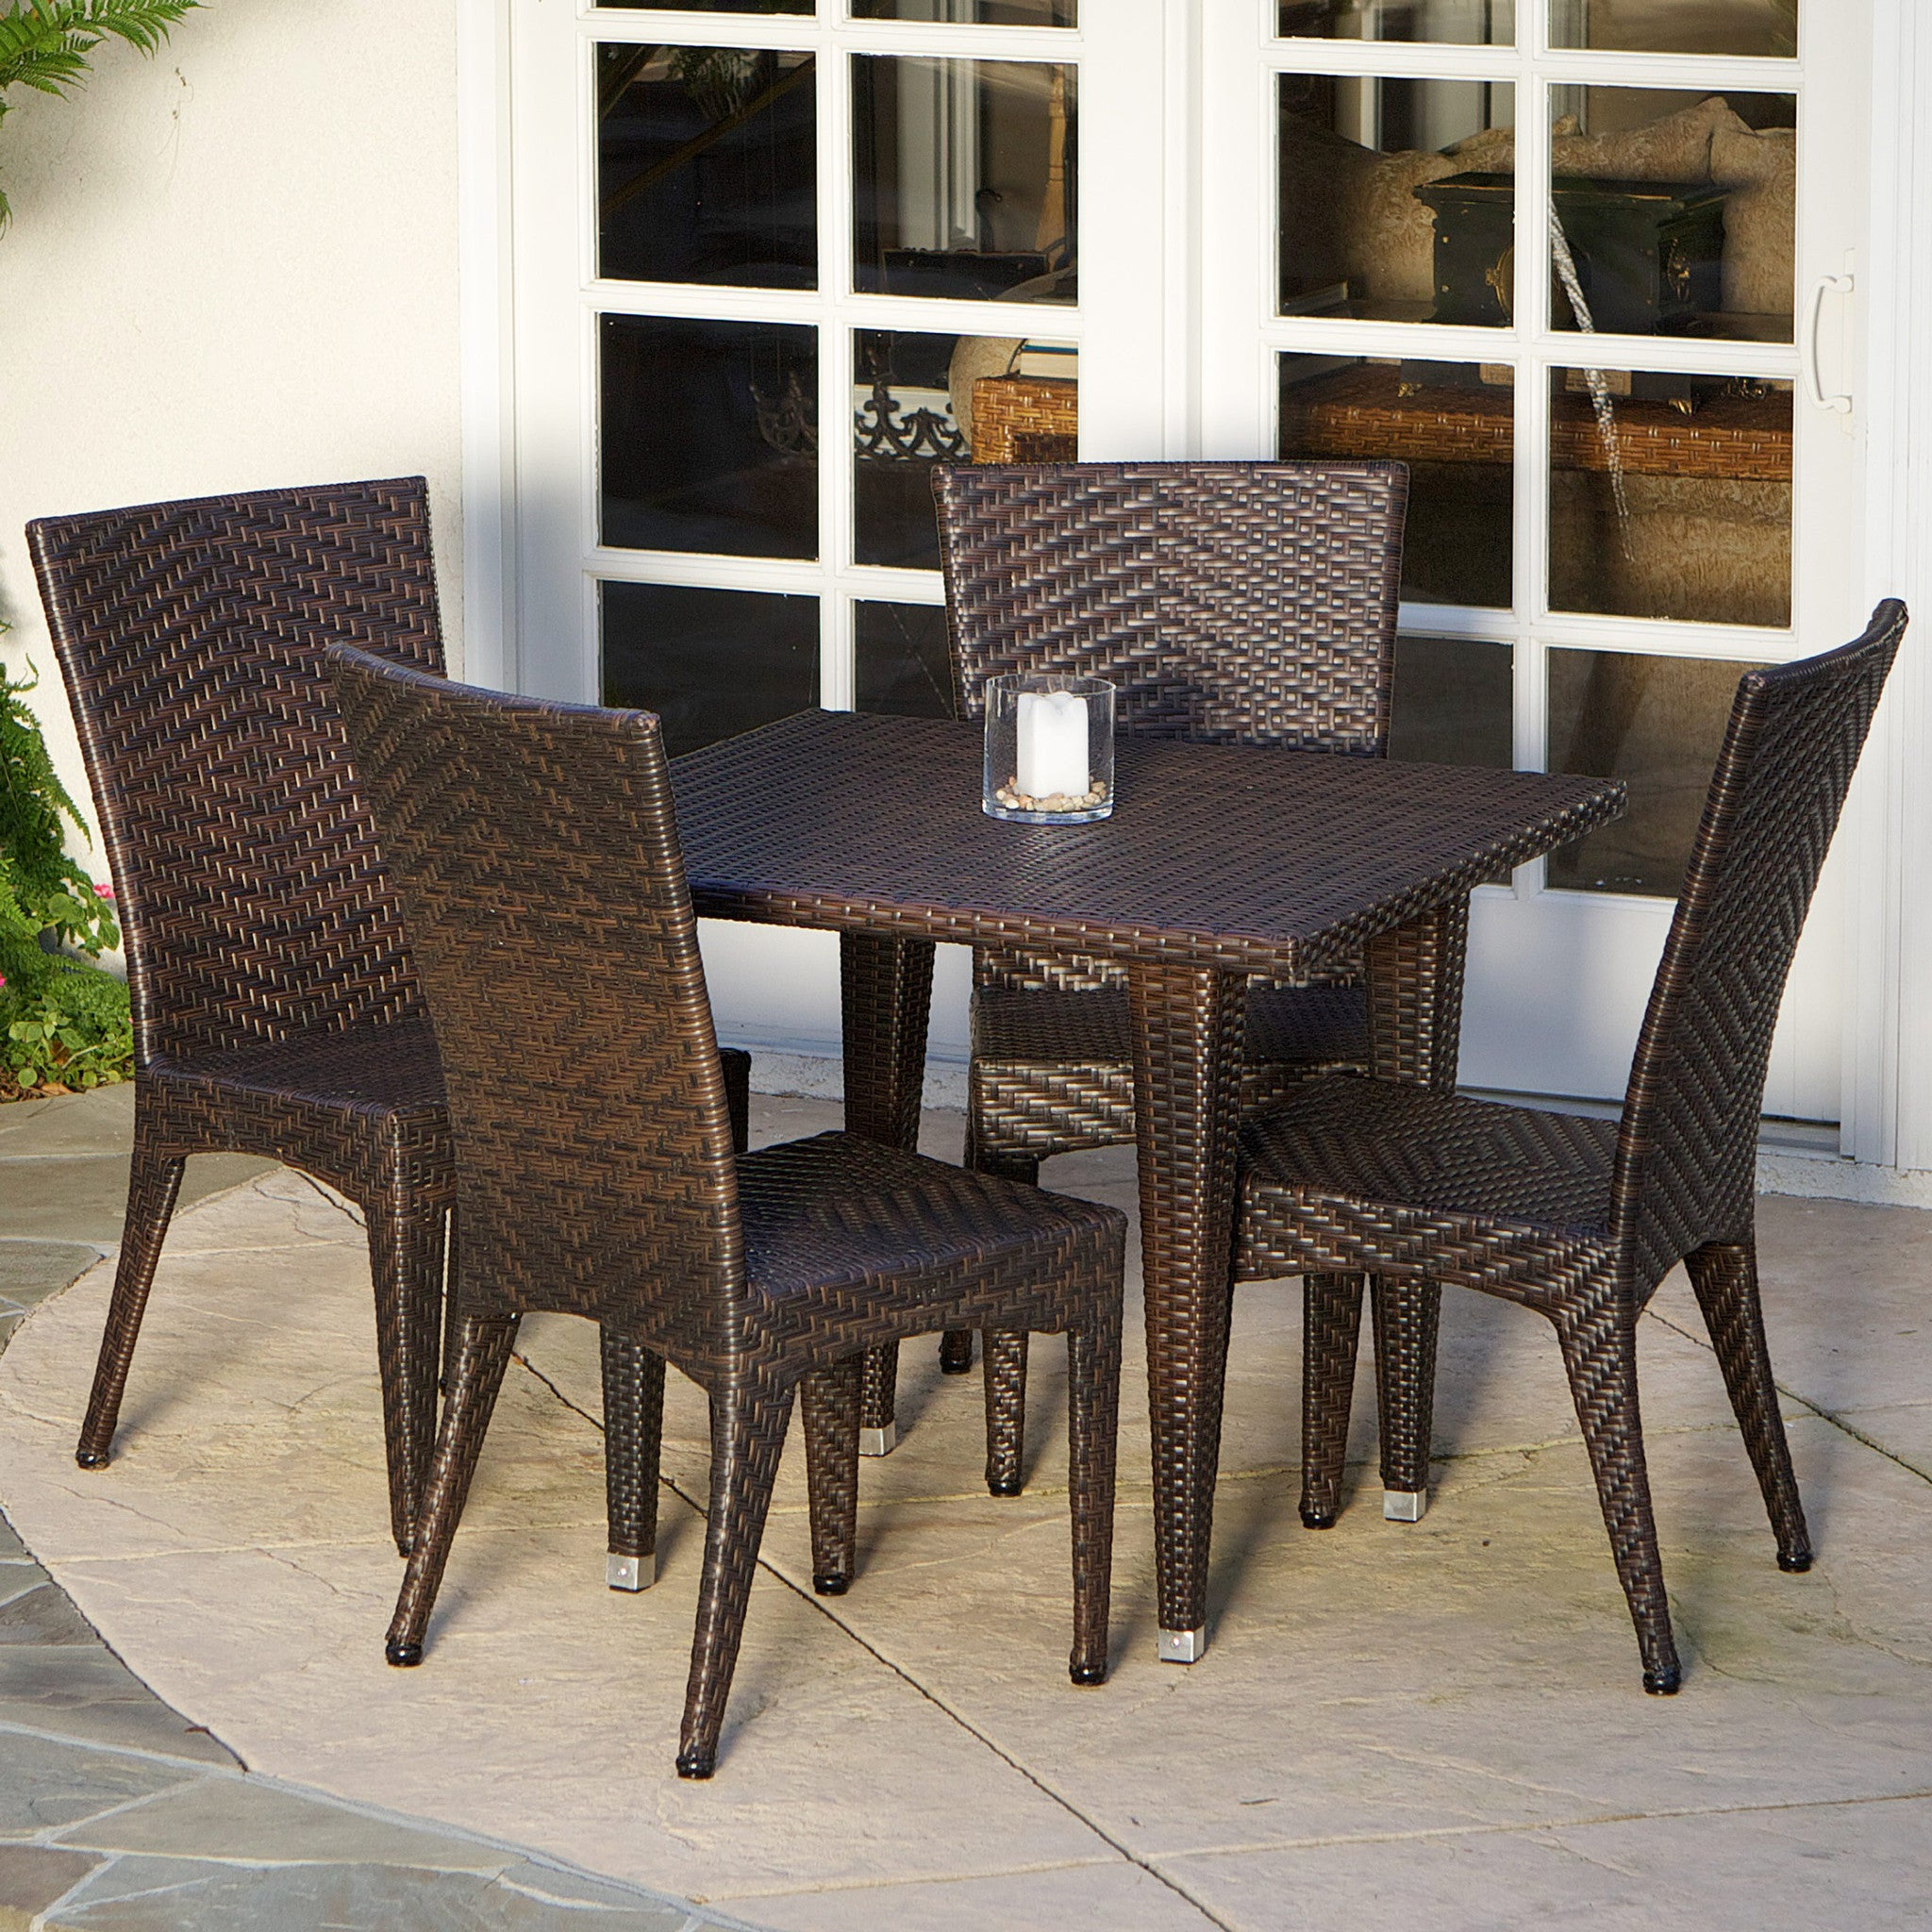 Outdoor Dining Set foto